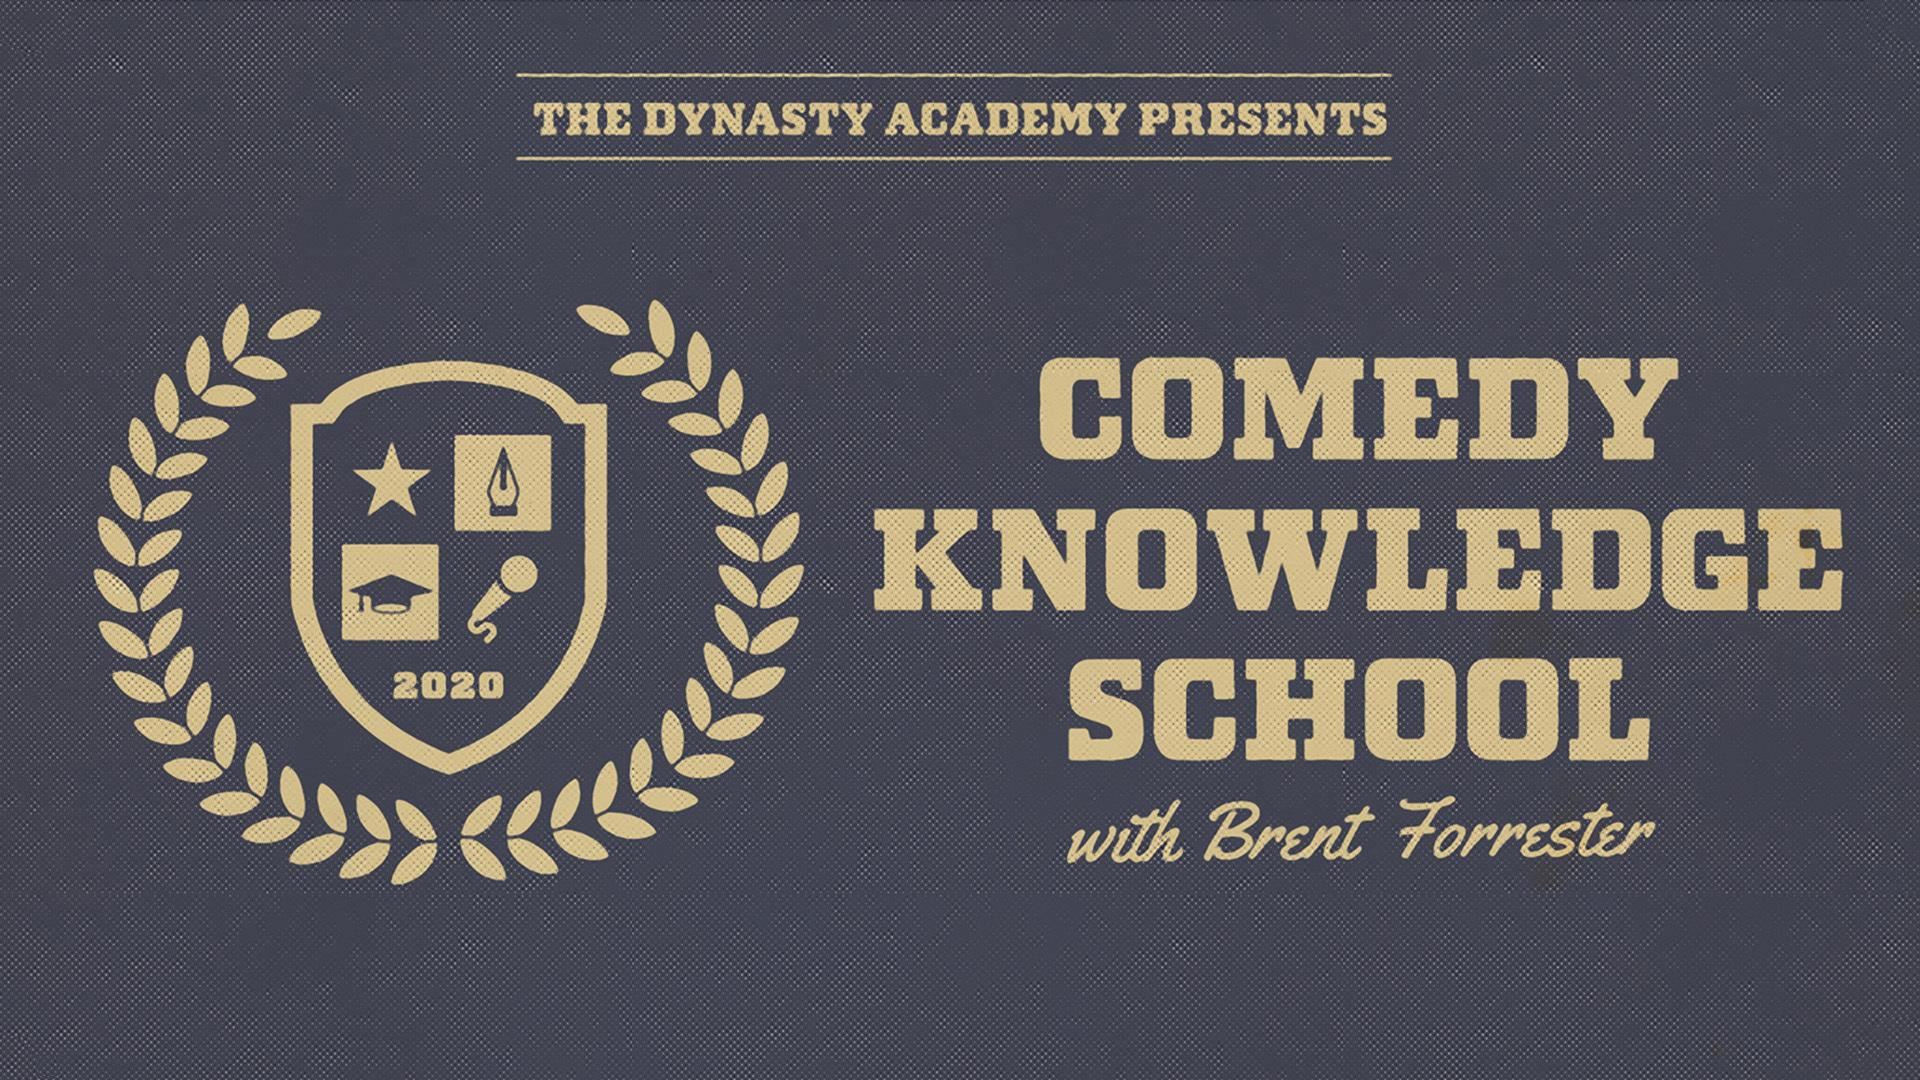 Comedy Knowledge School w/ Brent Forrester!